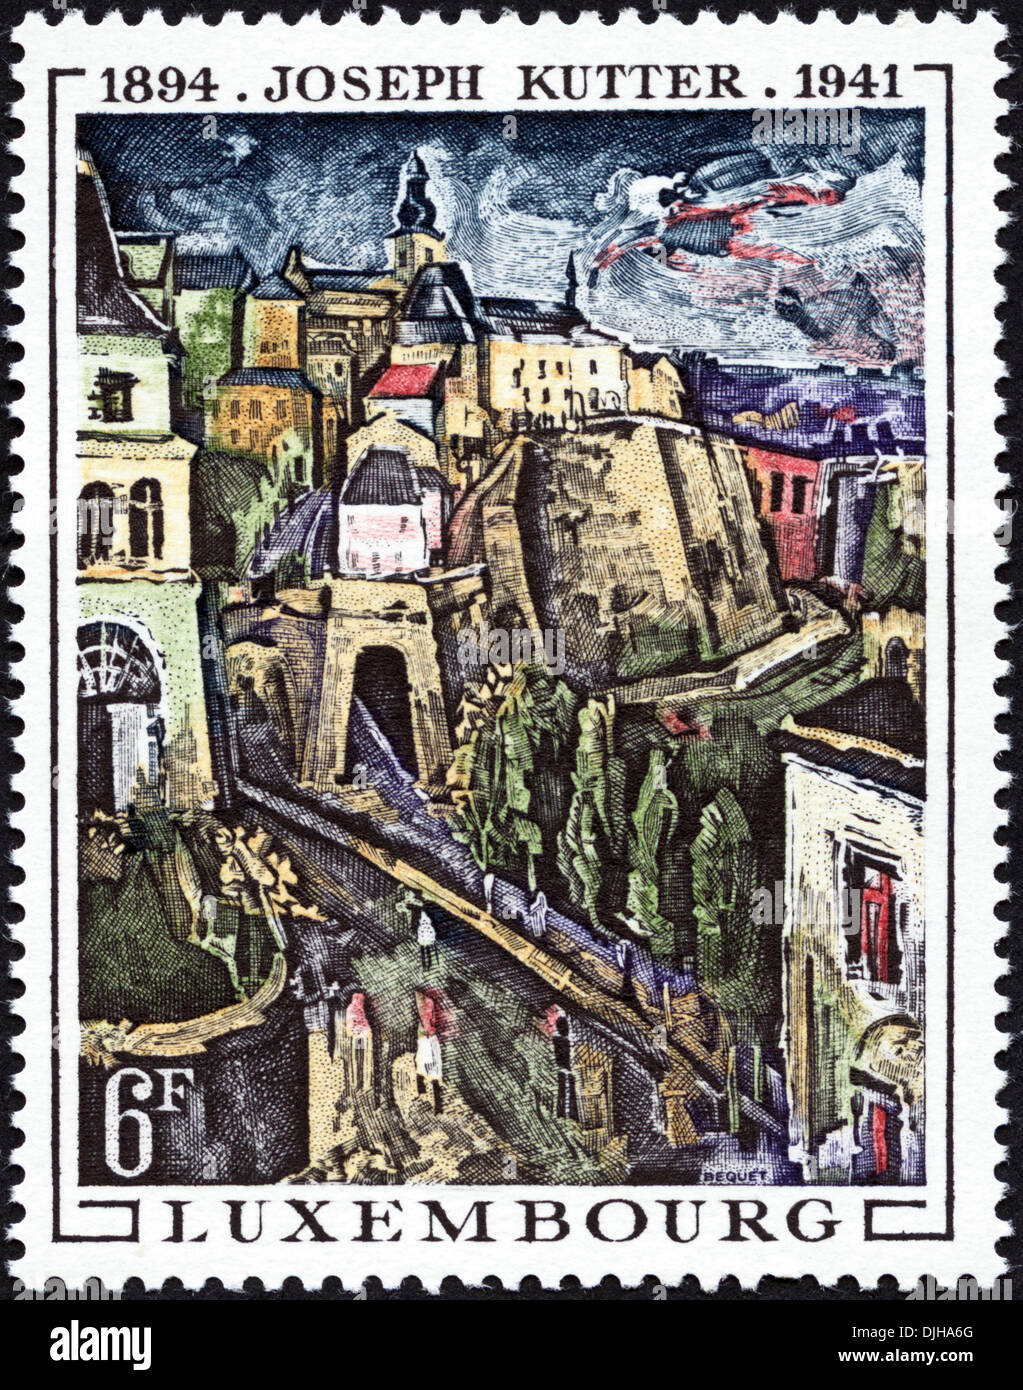 postage stamp Luxembourg 6F featuring artist Joseph Kutter 1894 - 1941 dated 1969 - Stock Image